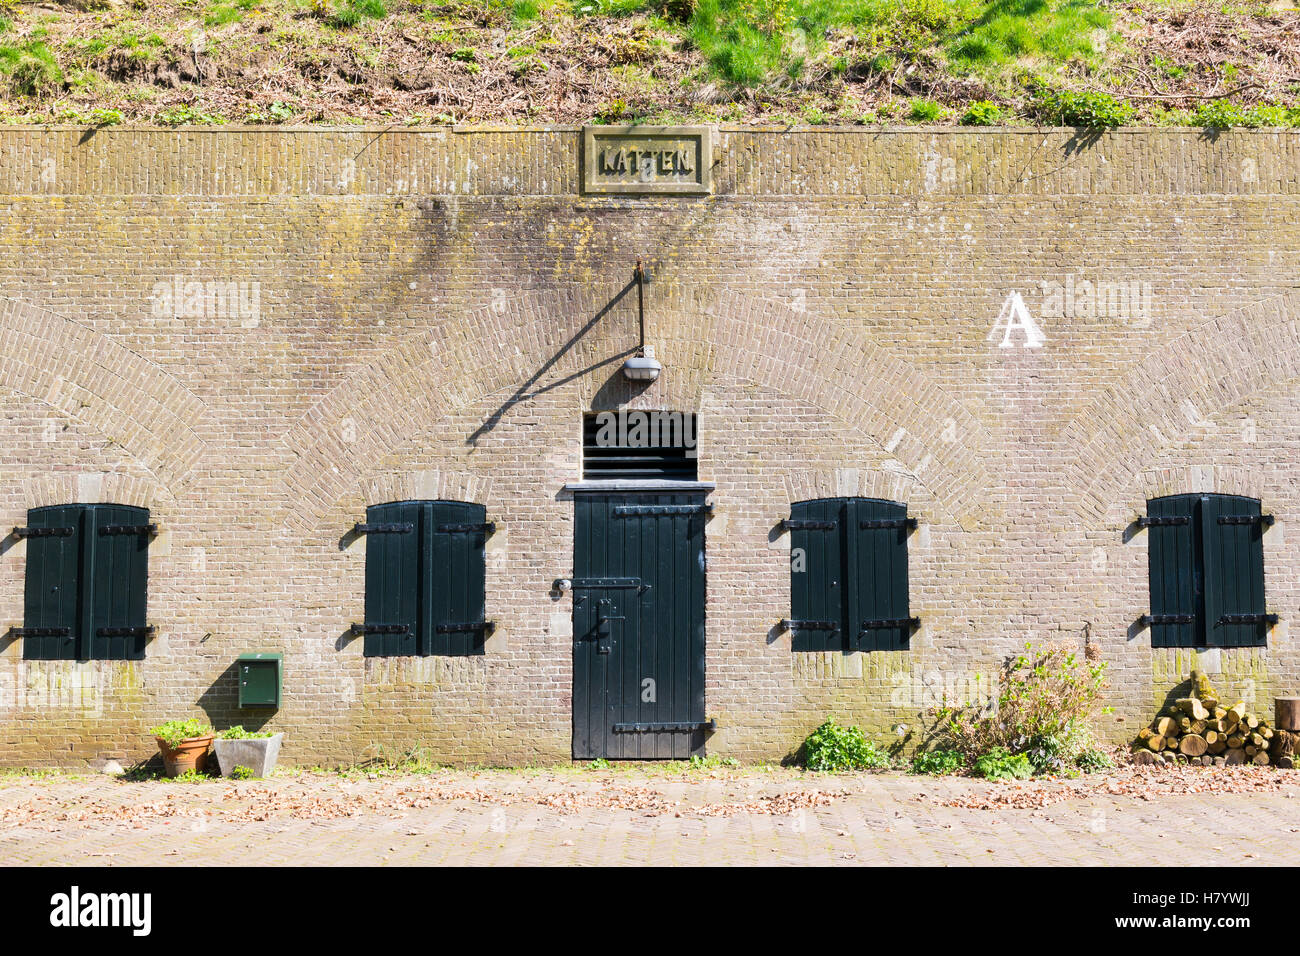 Entrance to barrack on bastion Katten in old fortified town of Naarden, North Holland, Netherlands - Stock Image